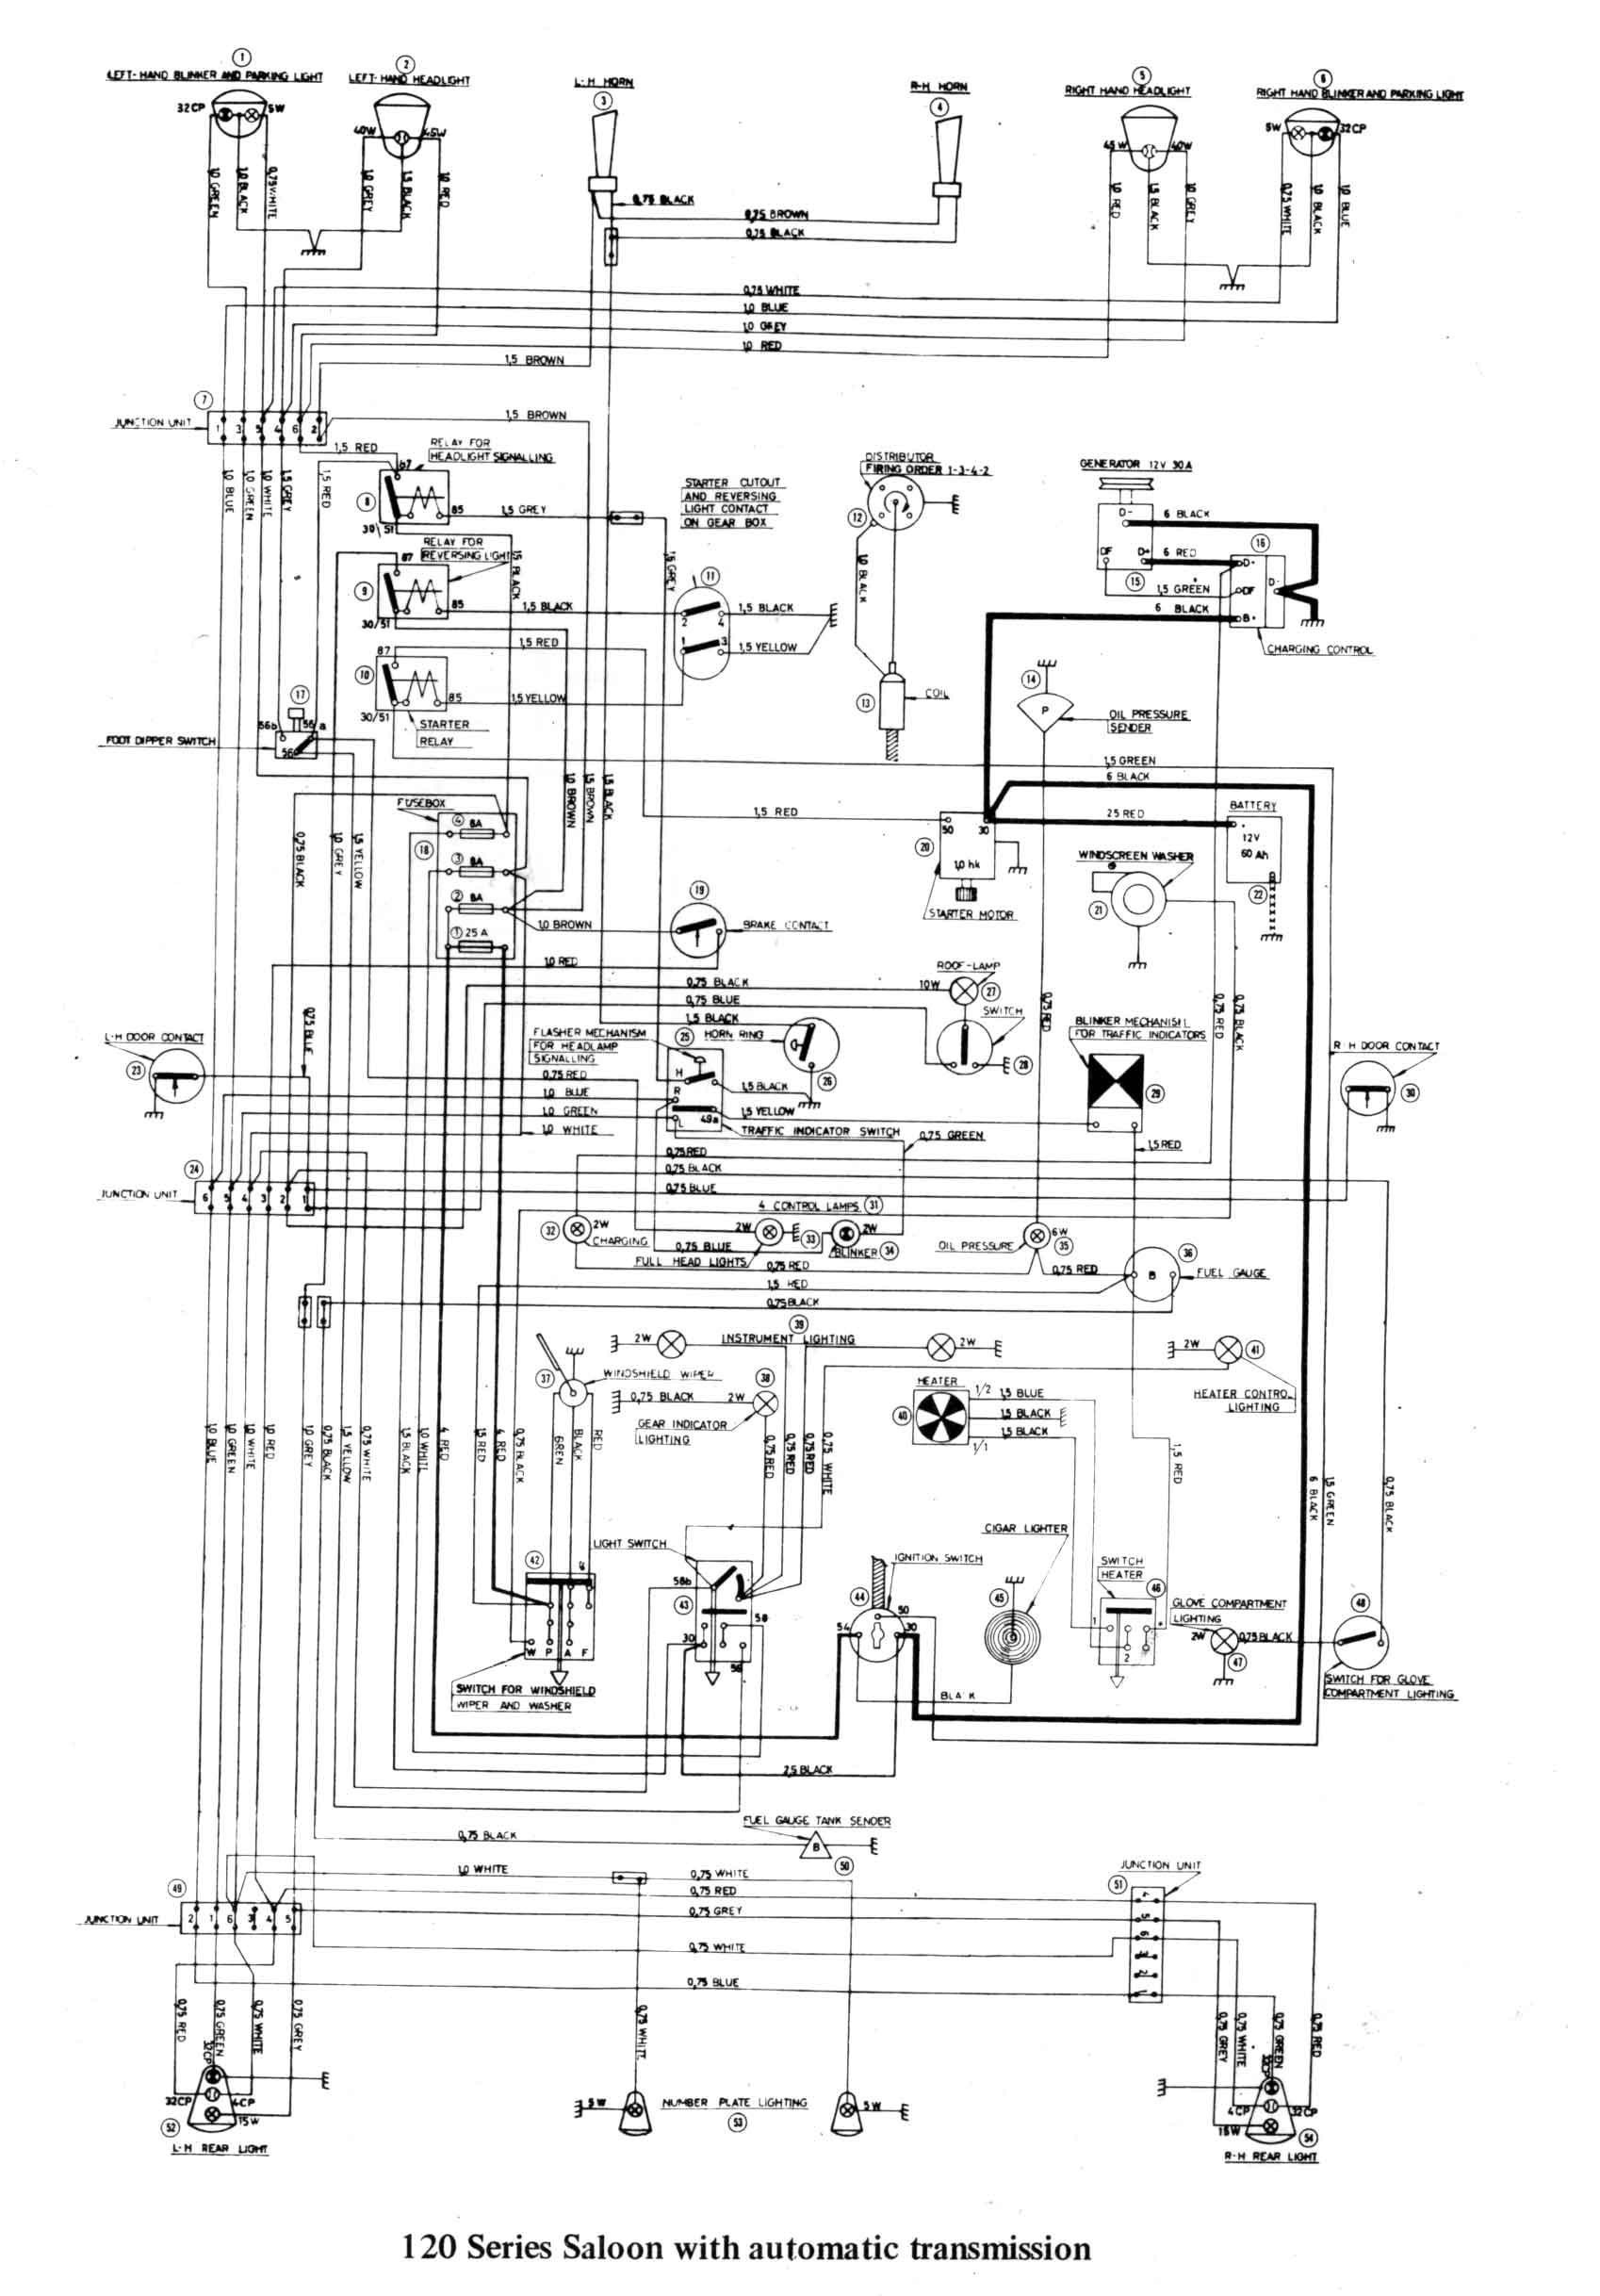 Club Car Engine Diagram Modern Home Wiring Diagram Valid Club Car Charger Receptacle Wiring Of Club Car Engine Diagram